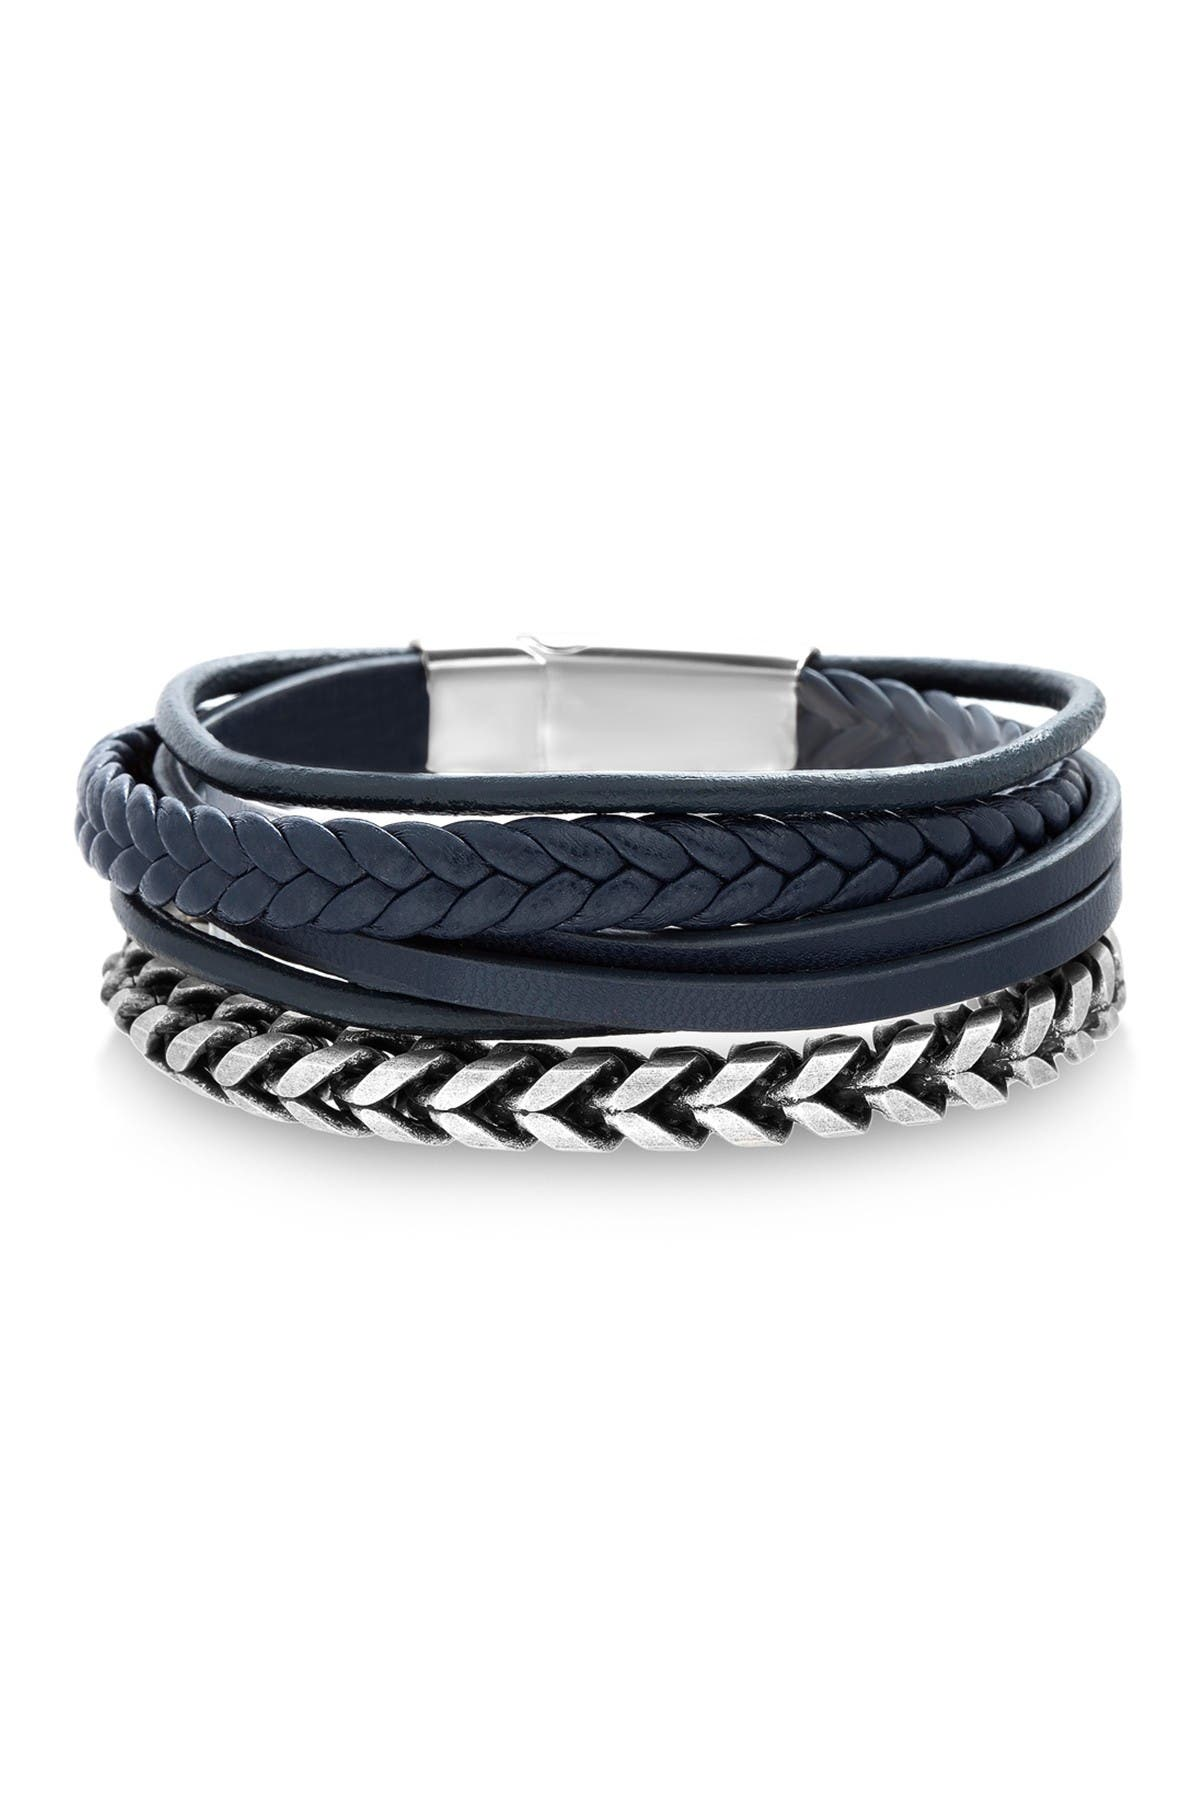 Image of Steve Madden Oxidized Curb Chain & Multi-Stranded Leather Duo Bracelet Set